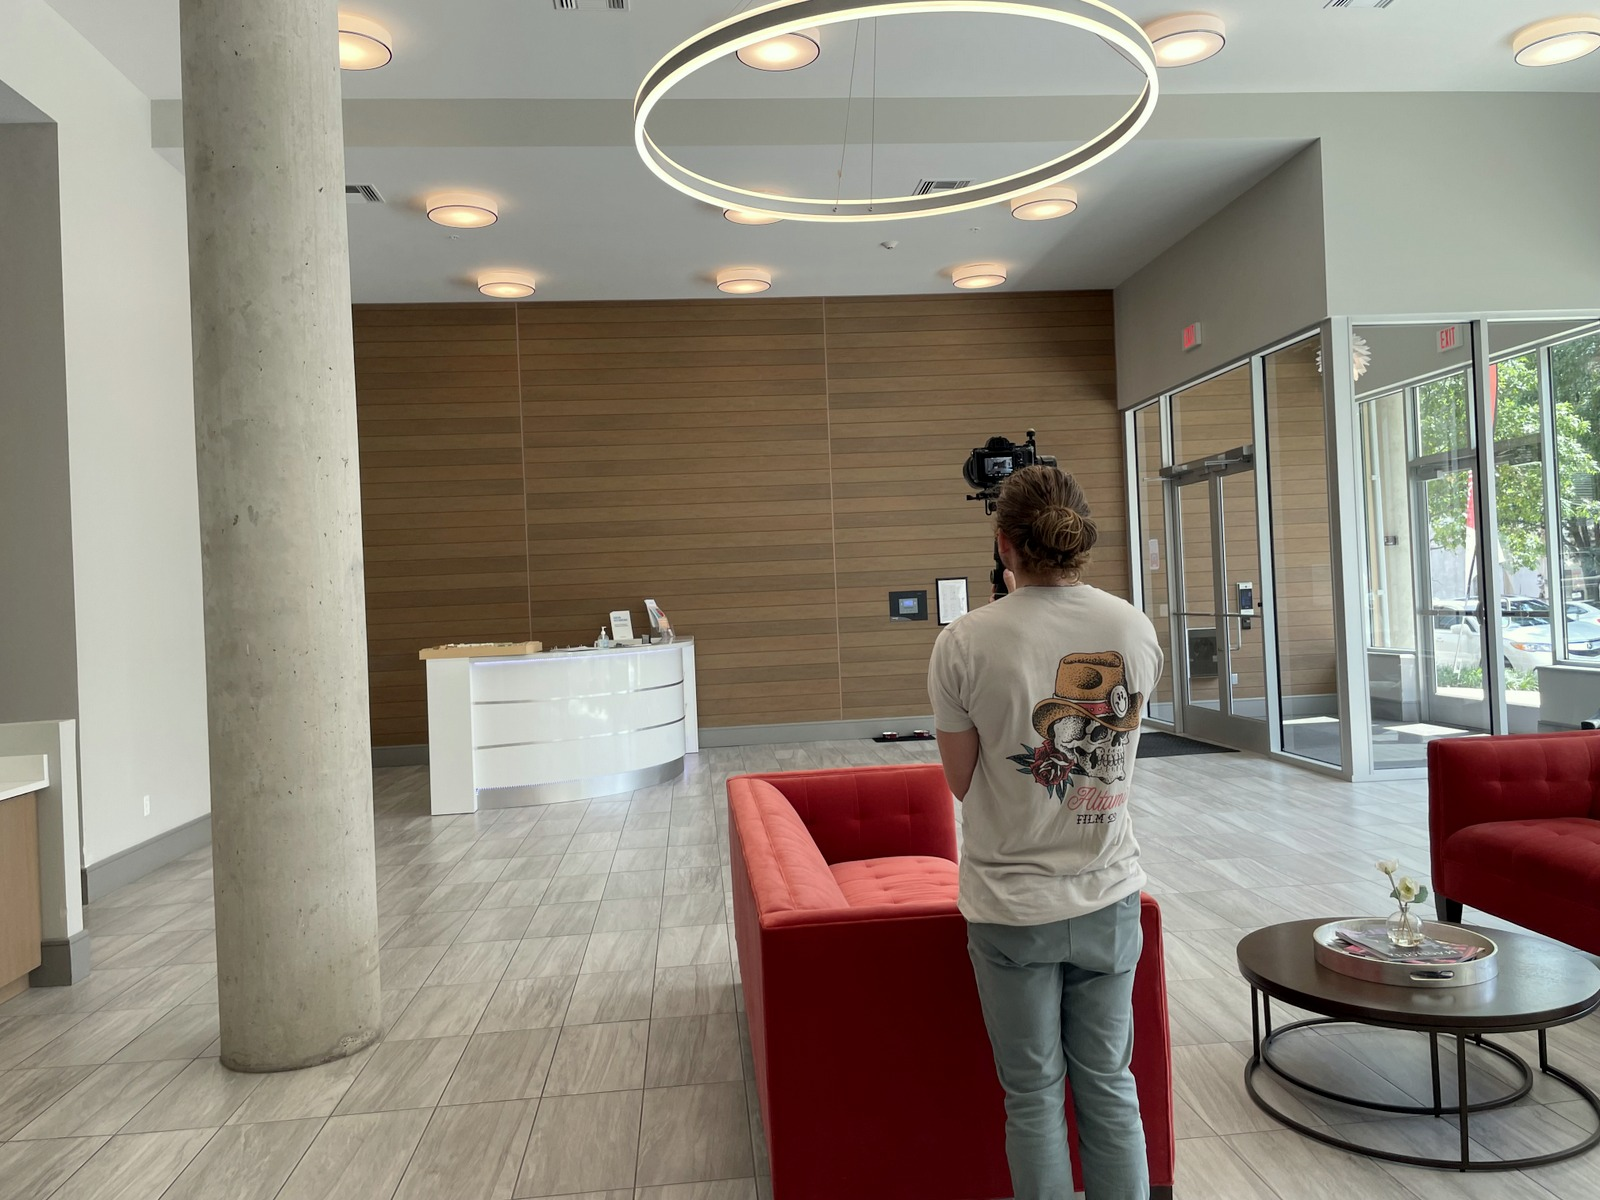 A cameraman films the lobby of one of the Center West buildings. (Fern Shen)